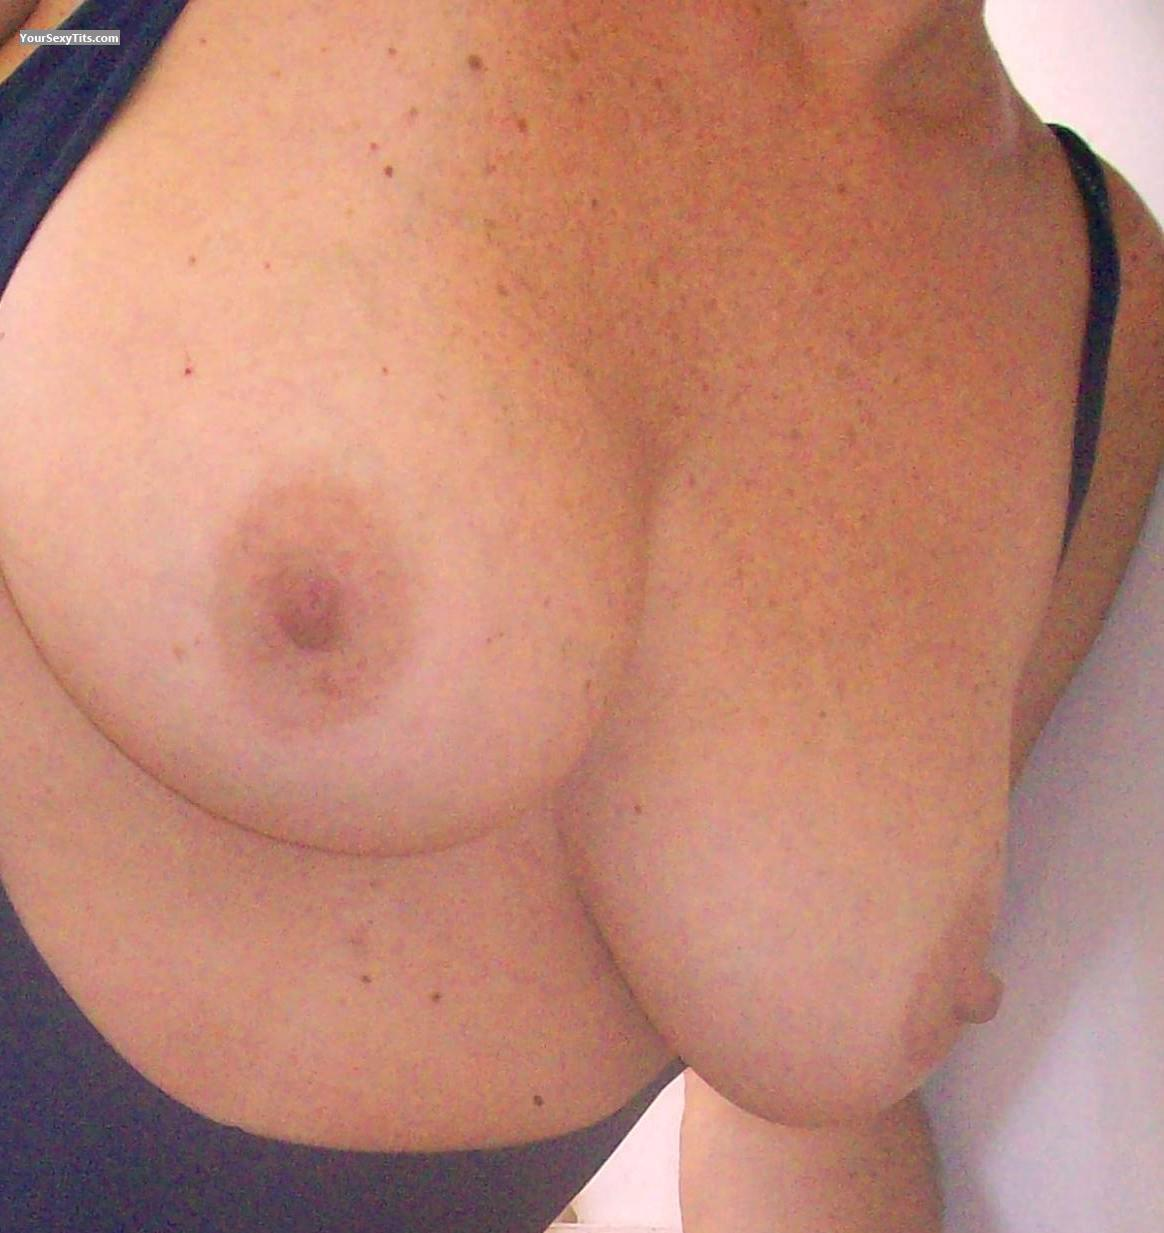 Tit Flash: Medium Tits - Fernanda From Brazil from Brazil